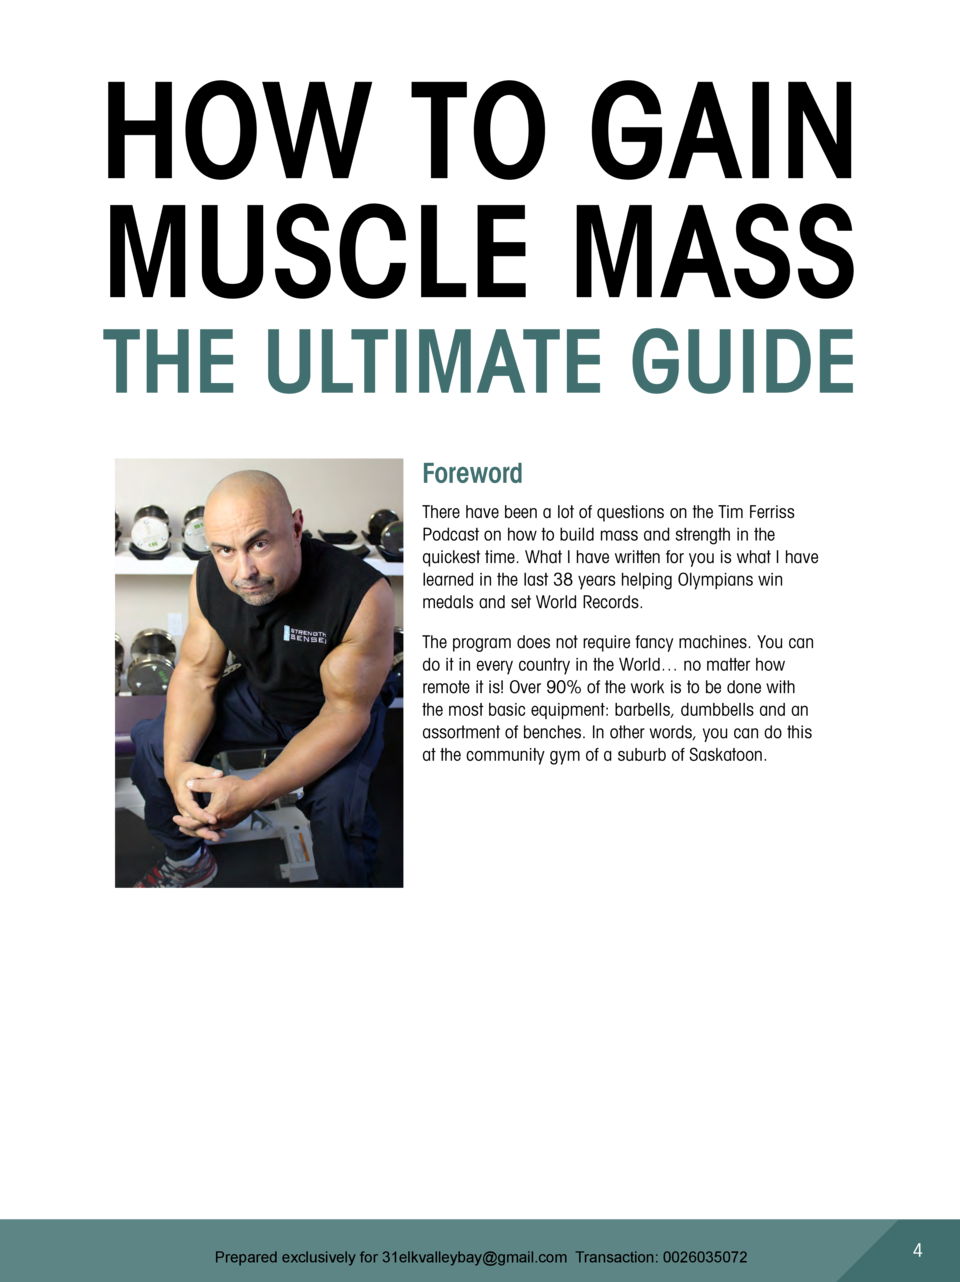 HOW TO GAIN MUSCLE MASS THE ULTIMATE GUIDE Foreword There have been a lot of questions on the Tim Ferriss Podcast on how t...